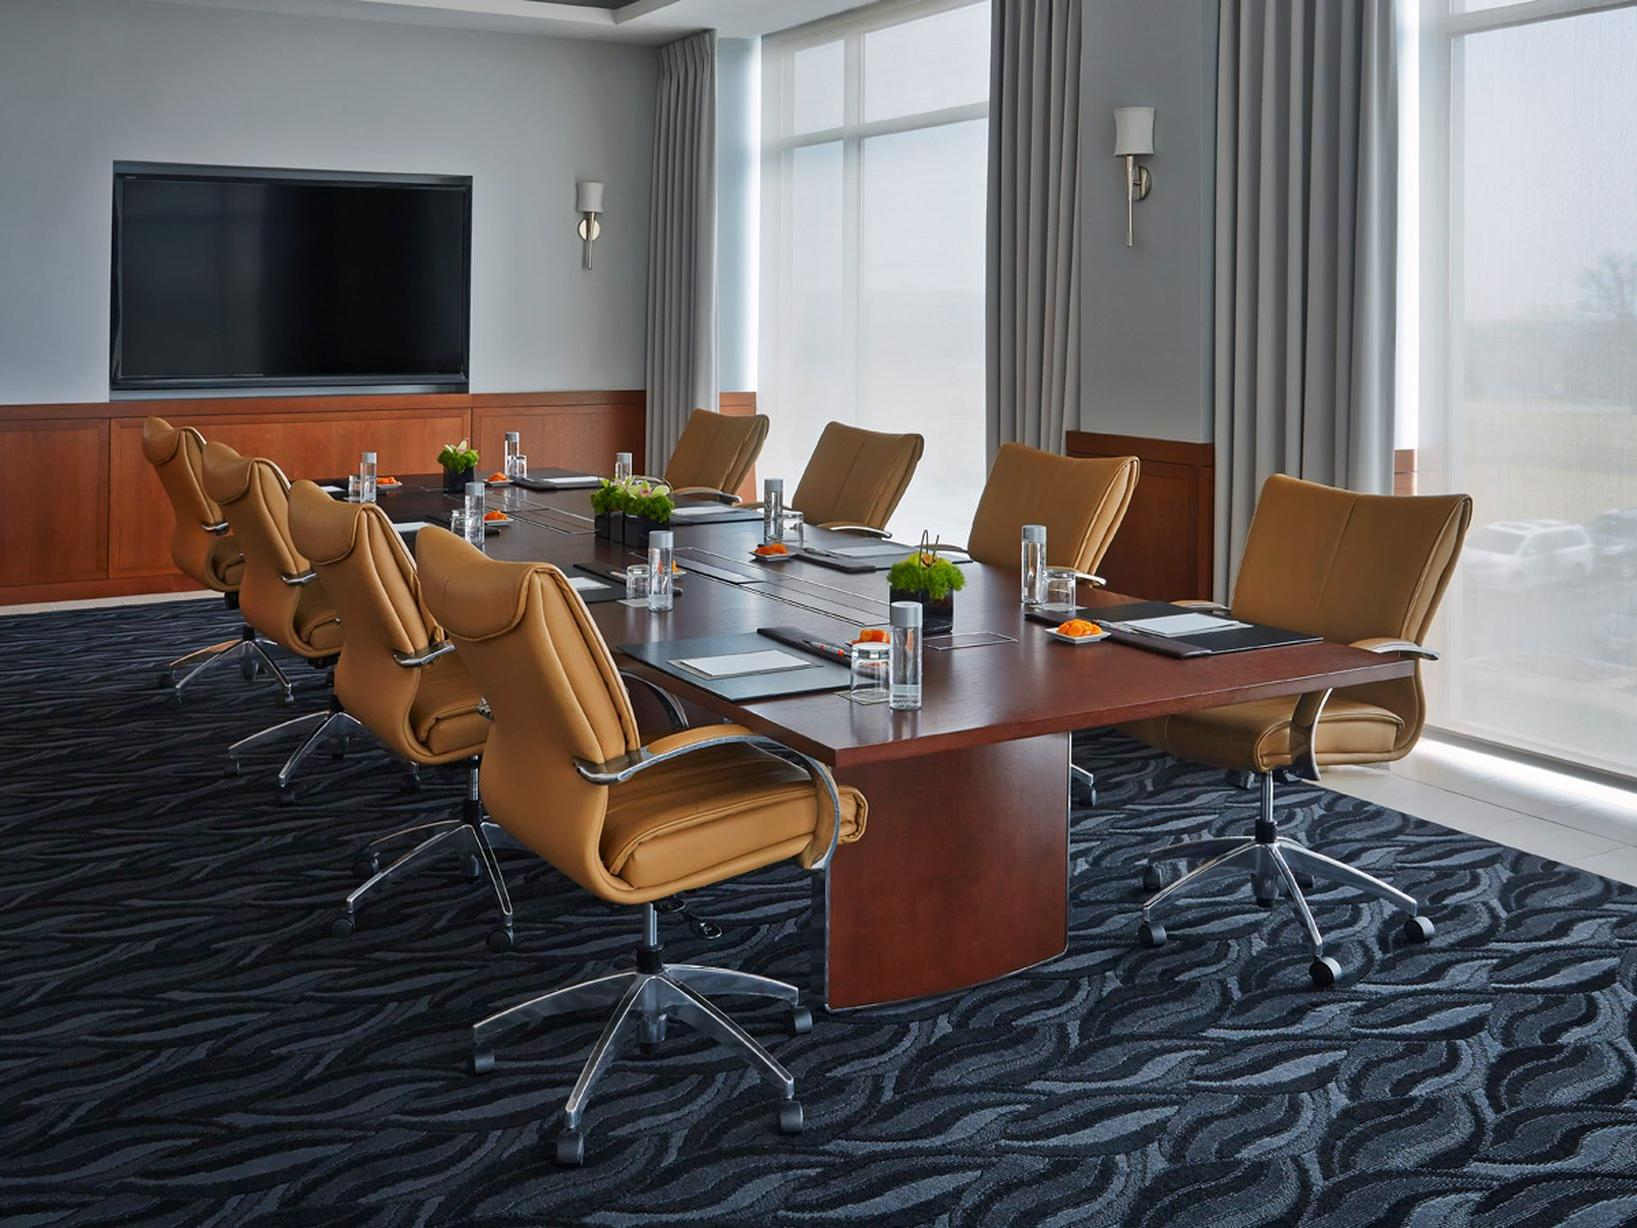 a large conference table in a meeting room